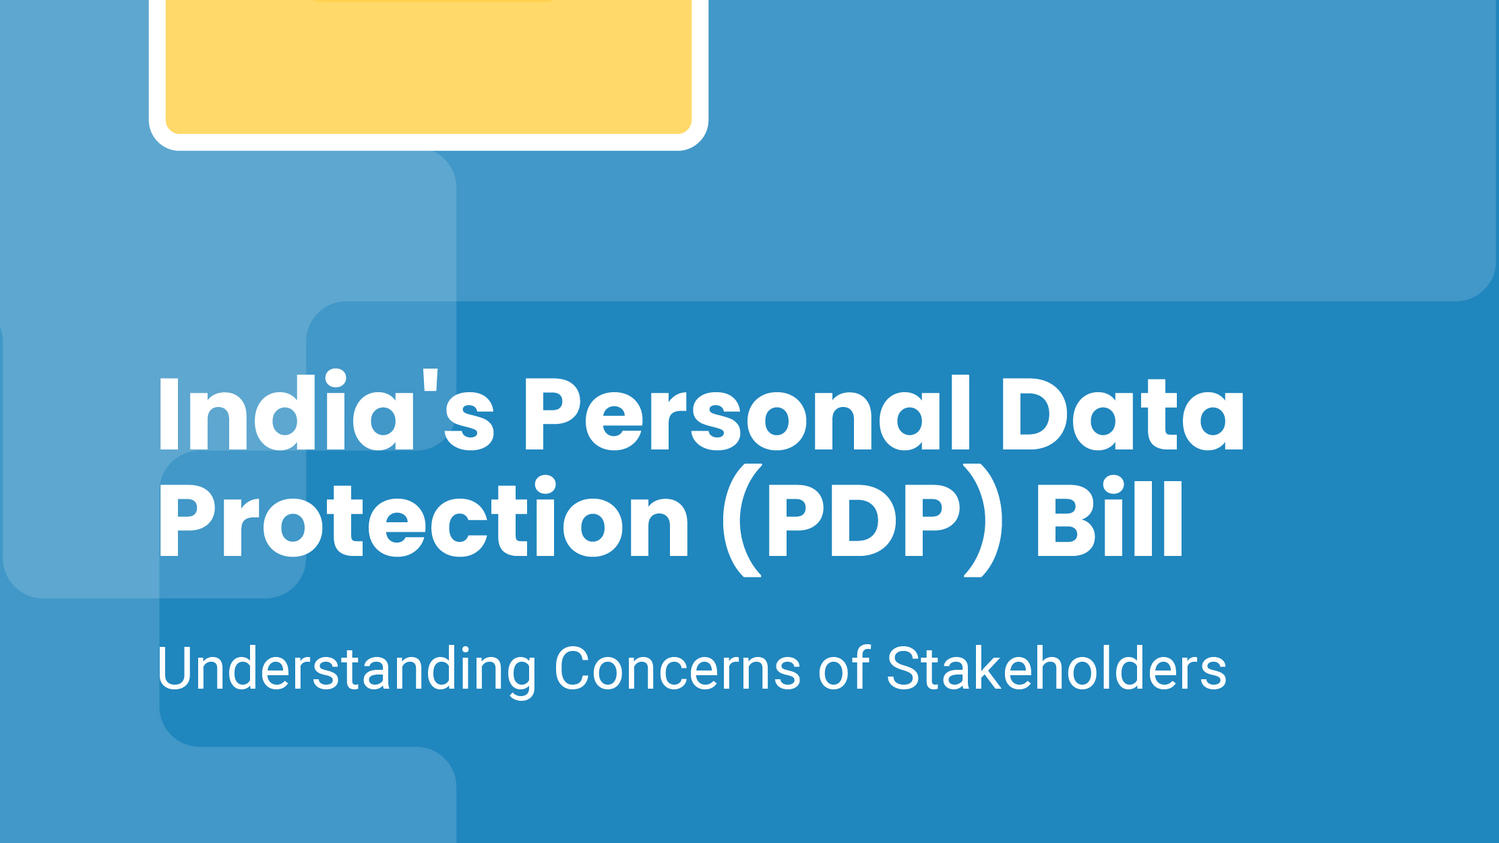 India's Personal Data Protection (PDP) Bill